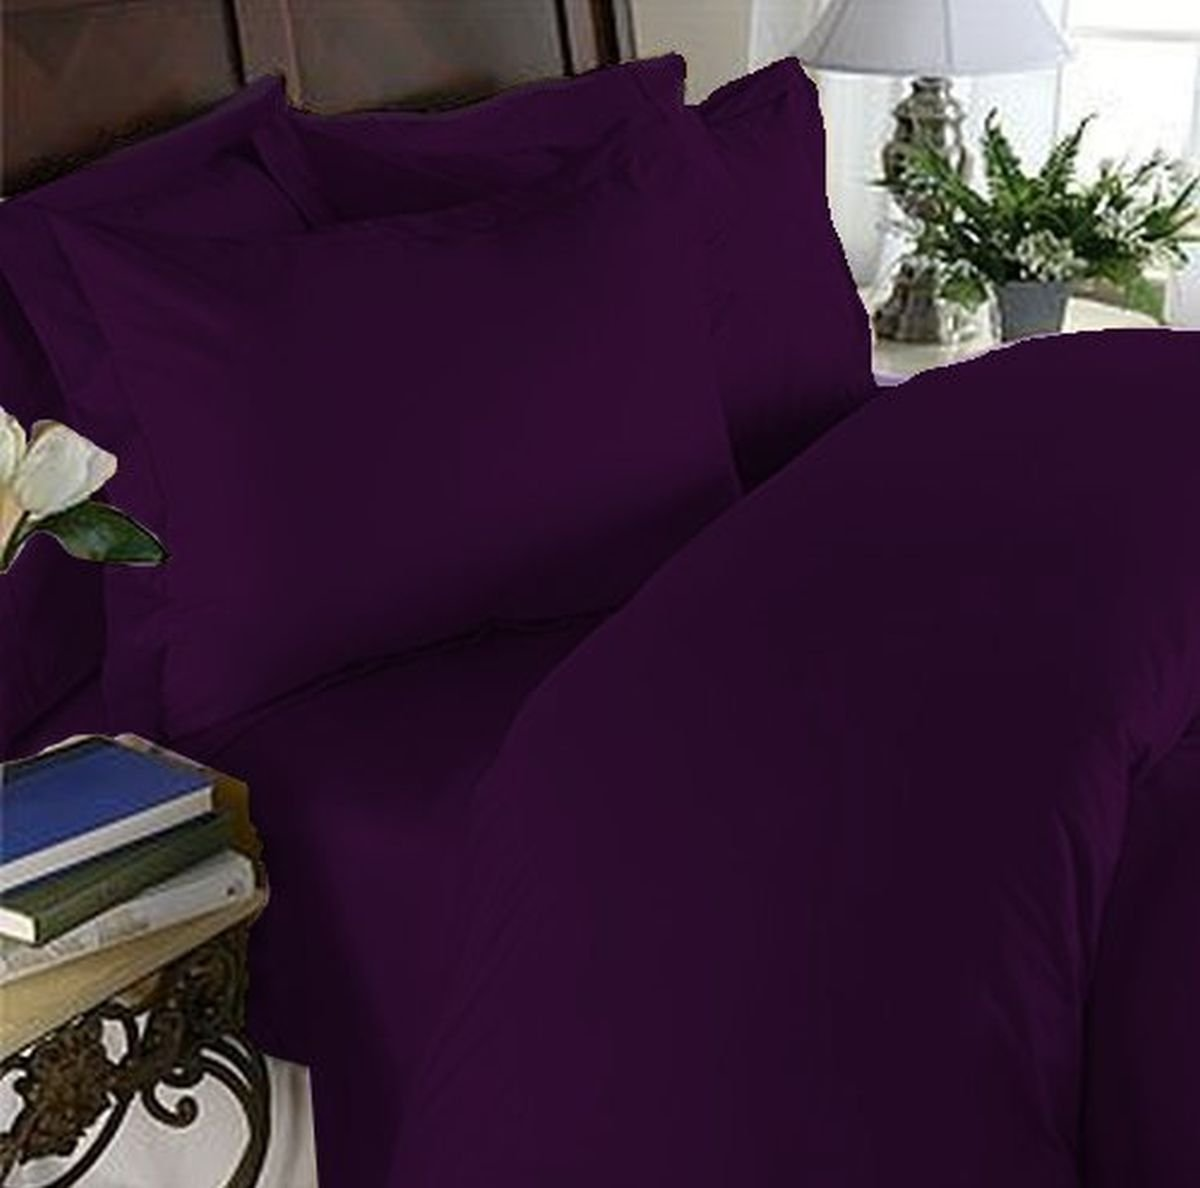 Eggplant Bedding Sets Sale Ease Bedding With Style